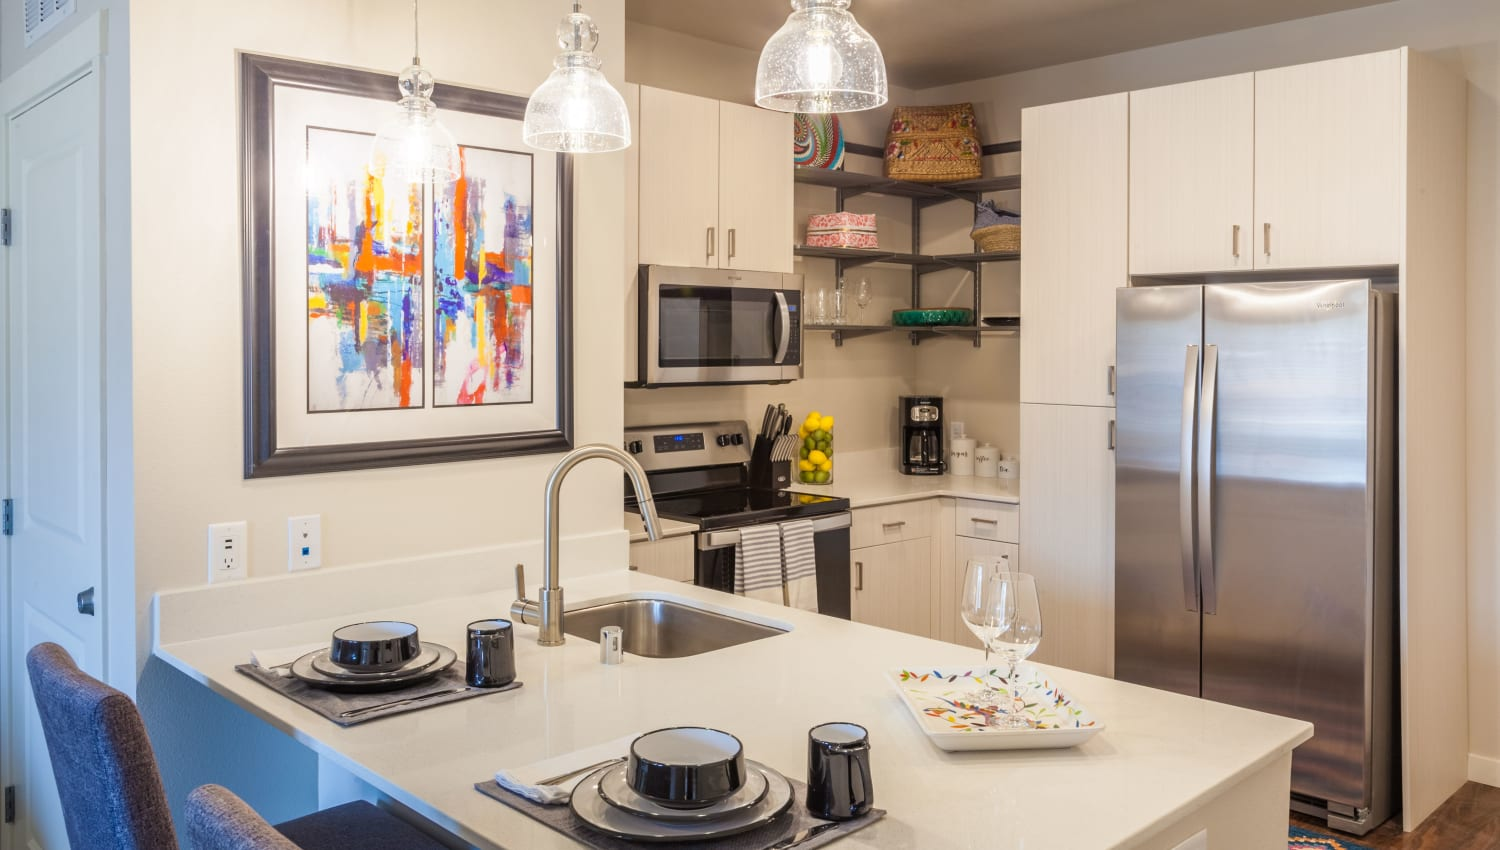 Model kitchen with stainless-steel appliances at Capitol Flats in Santa Fe, New Mexico